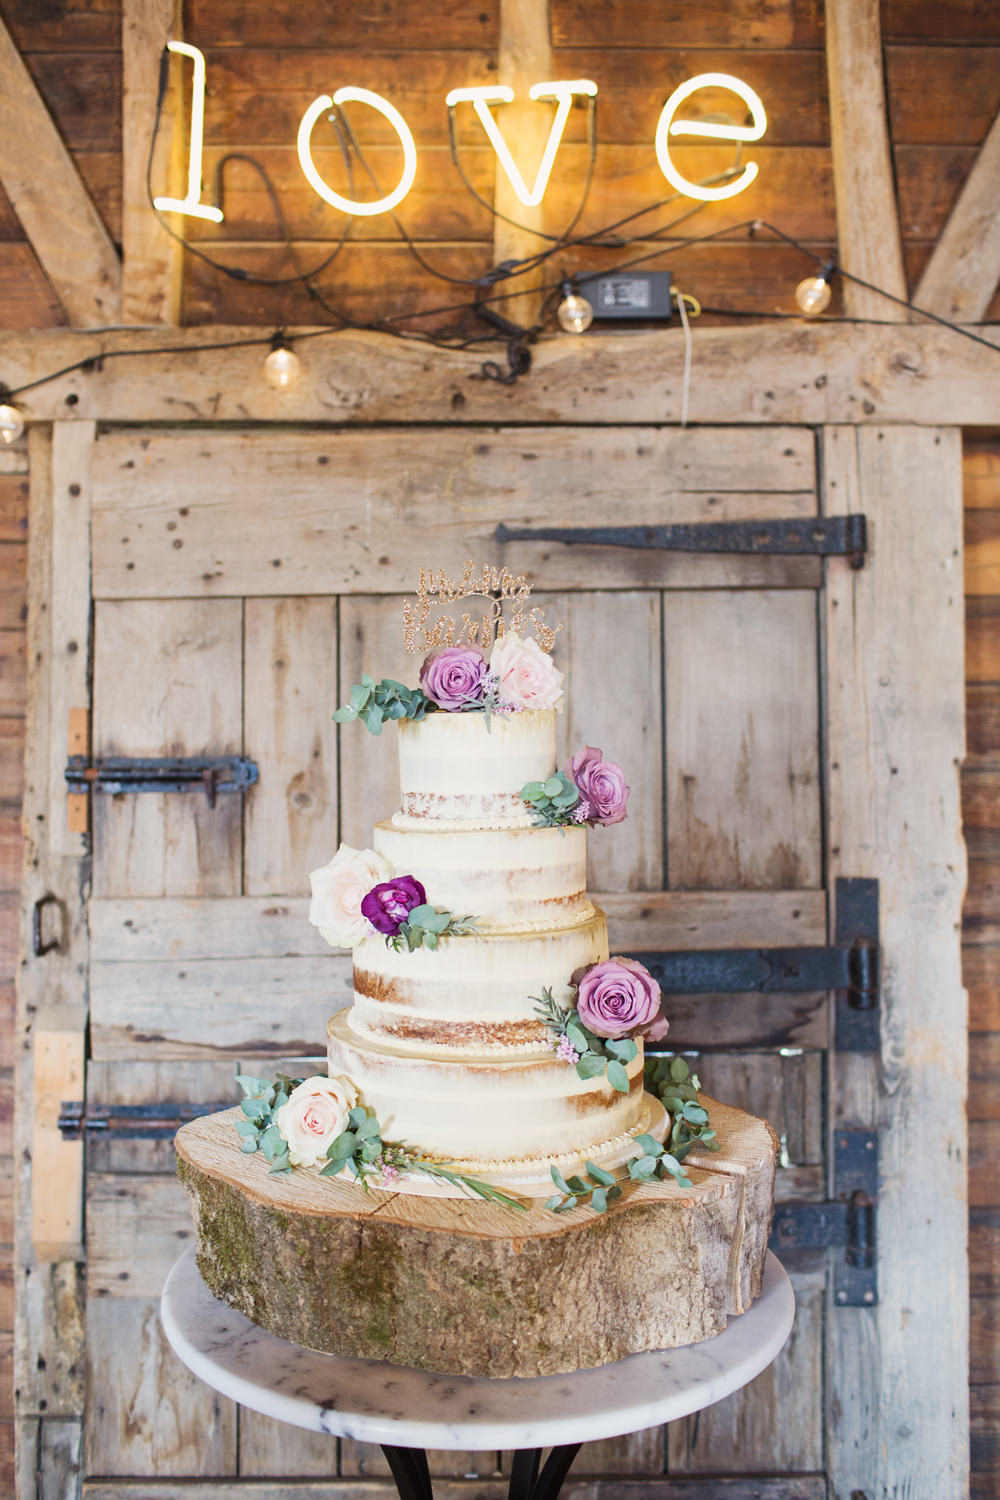 Semi Naked Buttercream Cake Wood Slice Log Flowers Light Up Love Sign Preston Court Wedding Cotton Candy Wedding Photography